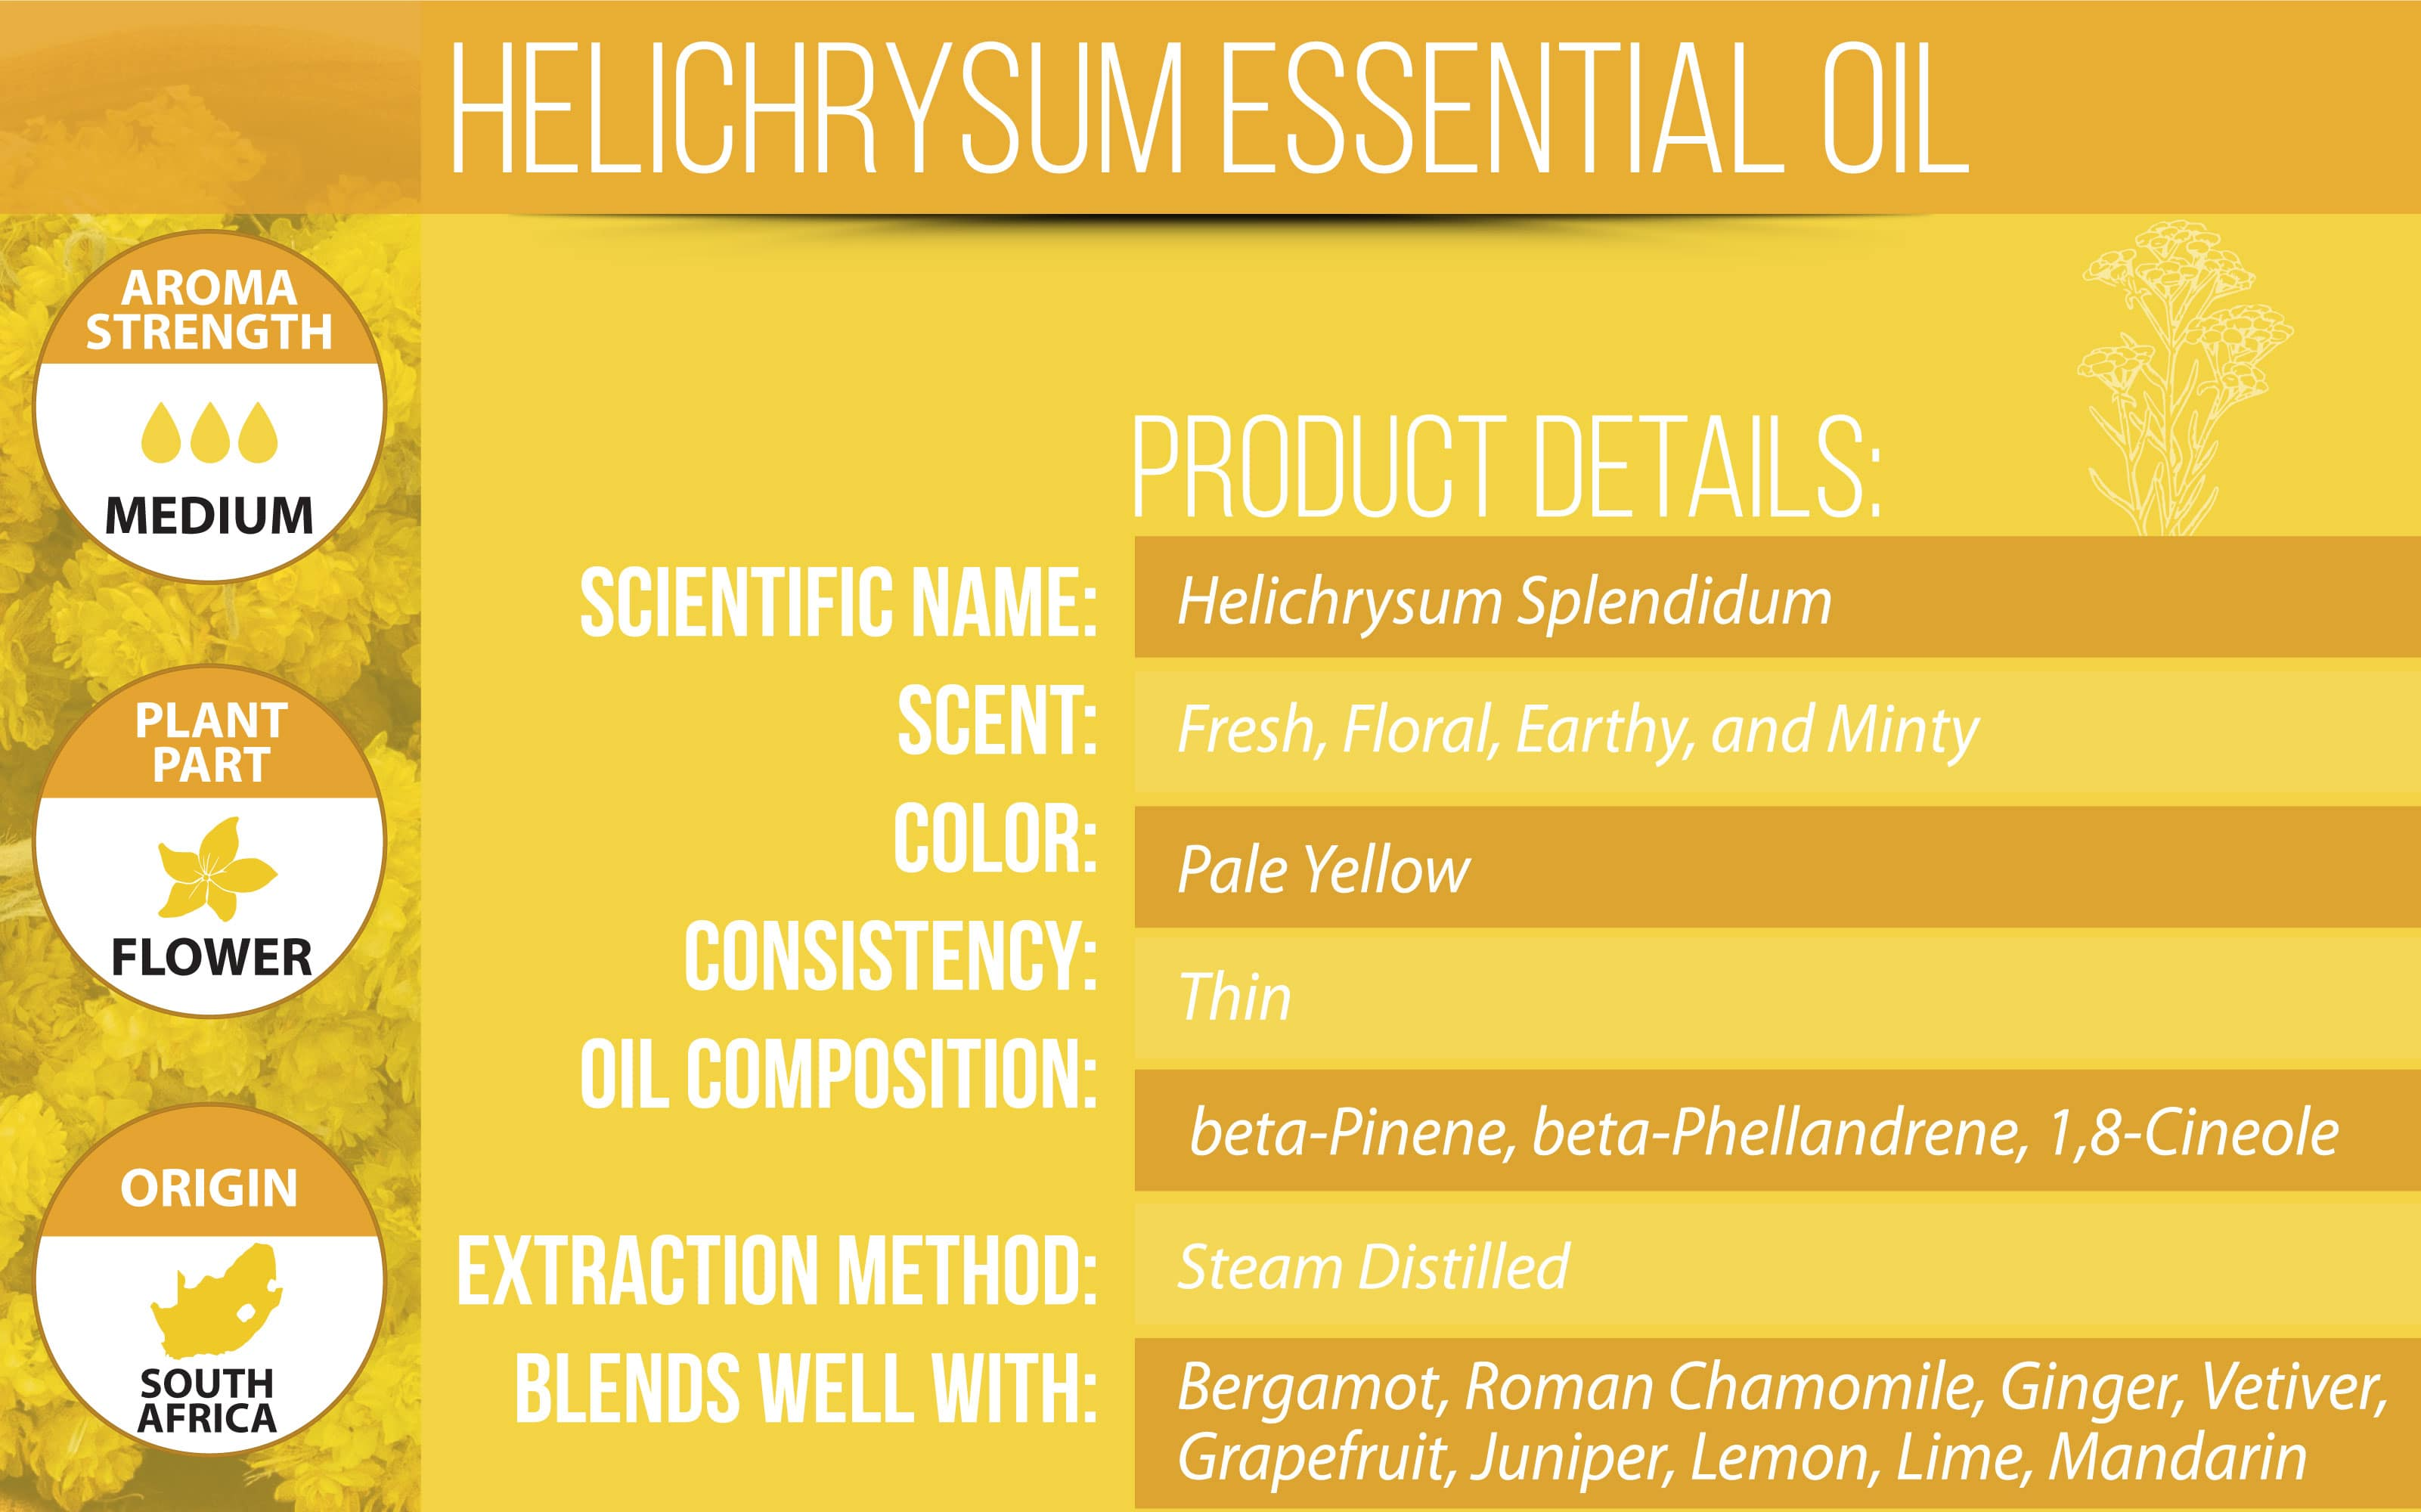 Helichrysum Essential Oil Product Details